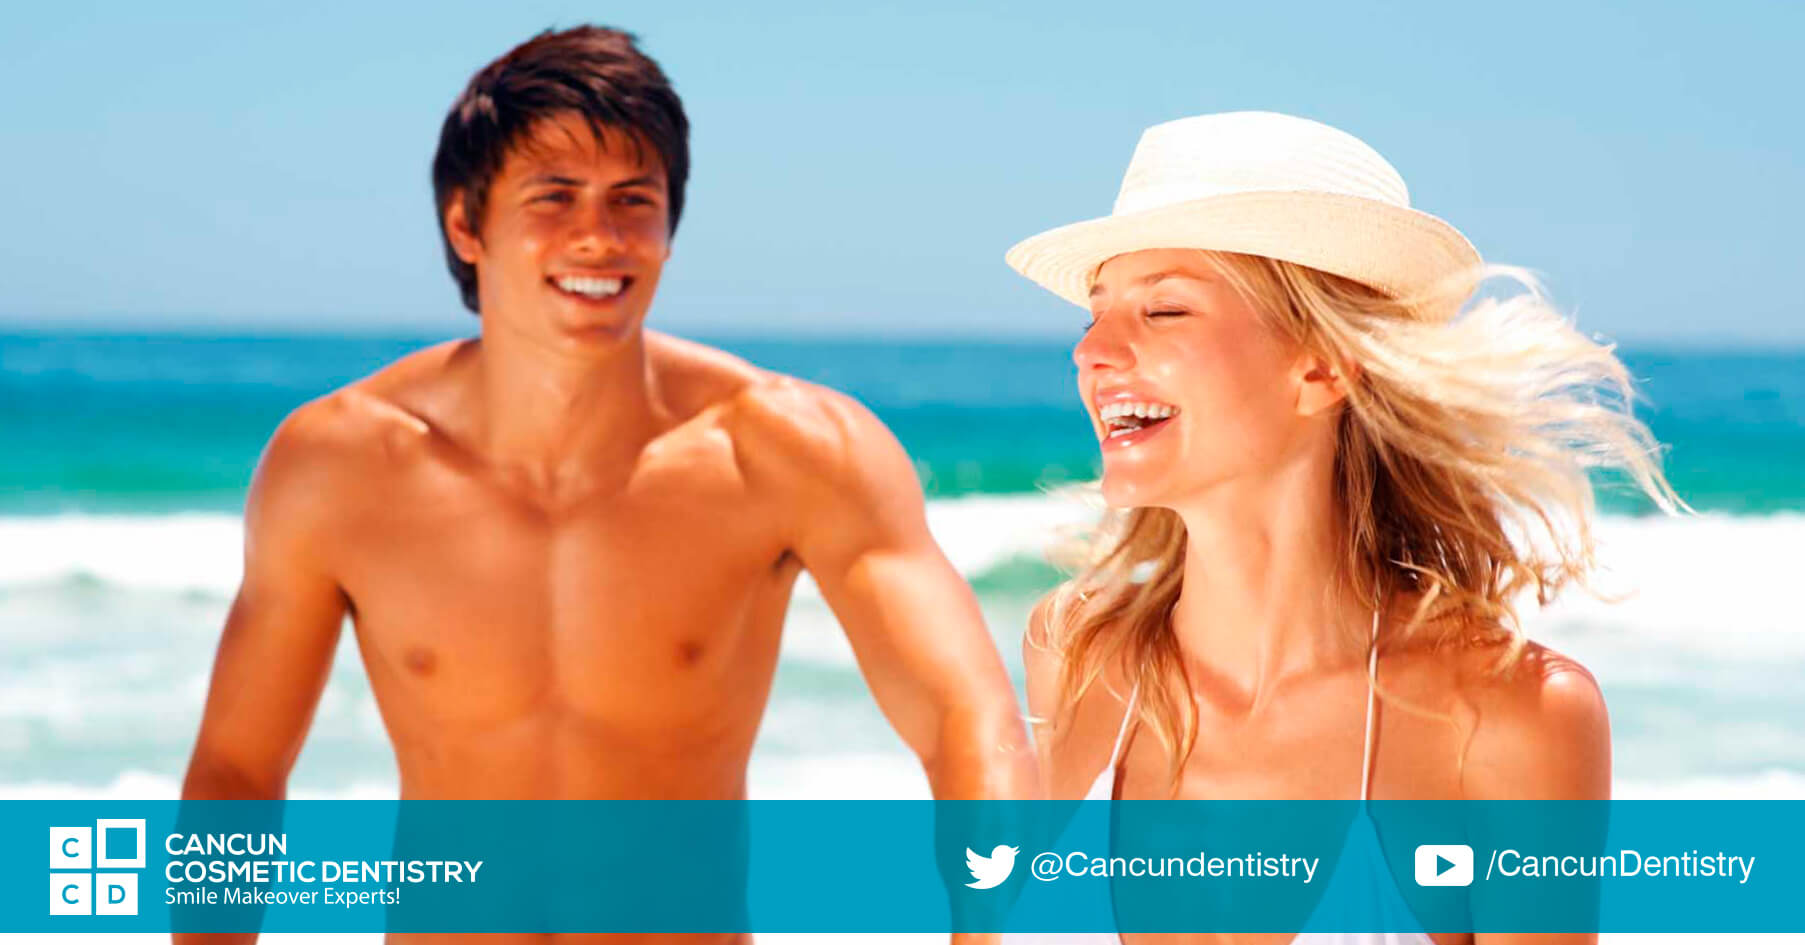 Is it a good idea to come to Cancun for dental tourism?